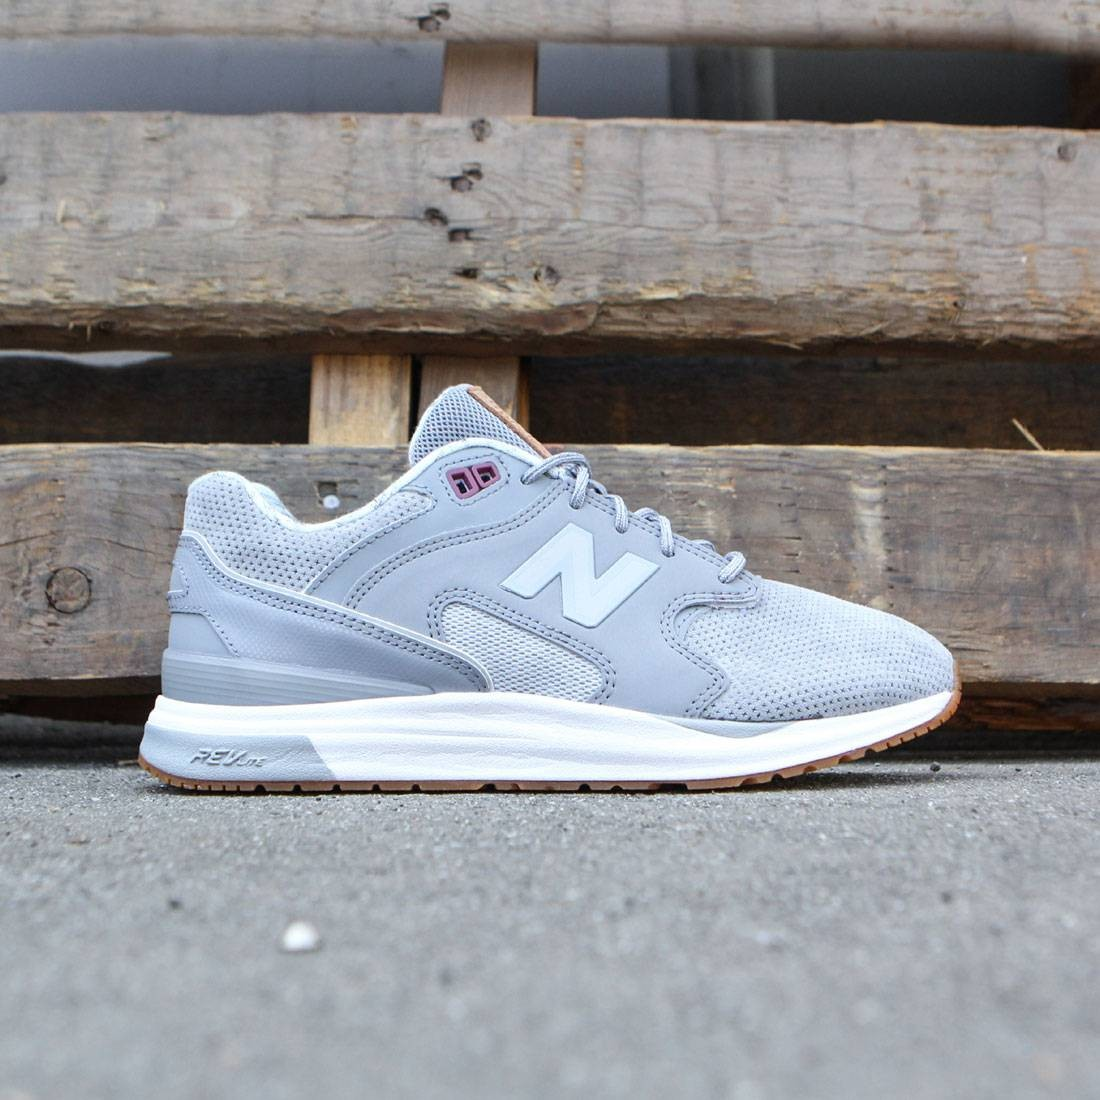 nouveau produit be825 5f558 New Balance Women 1550 Suede WL1550NB (gray / steel / silver mink)